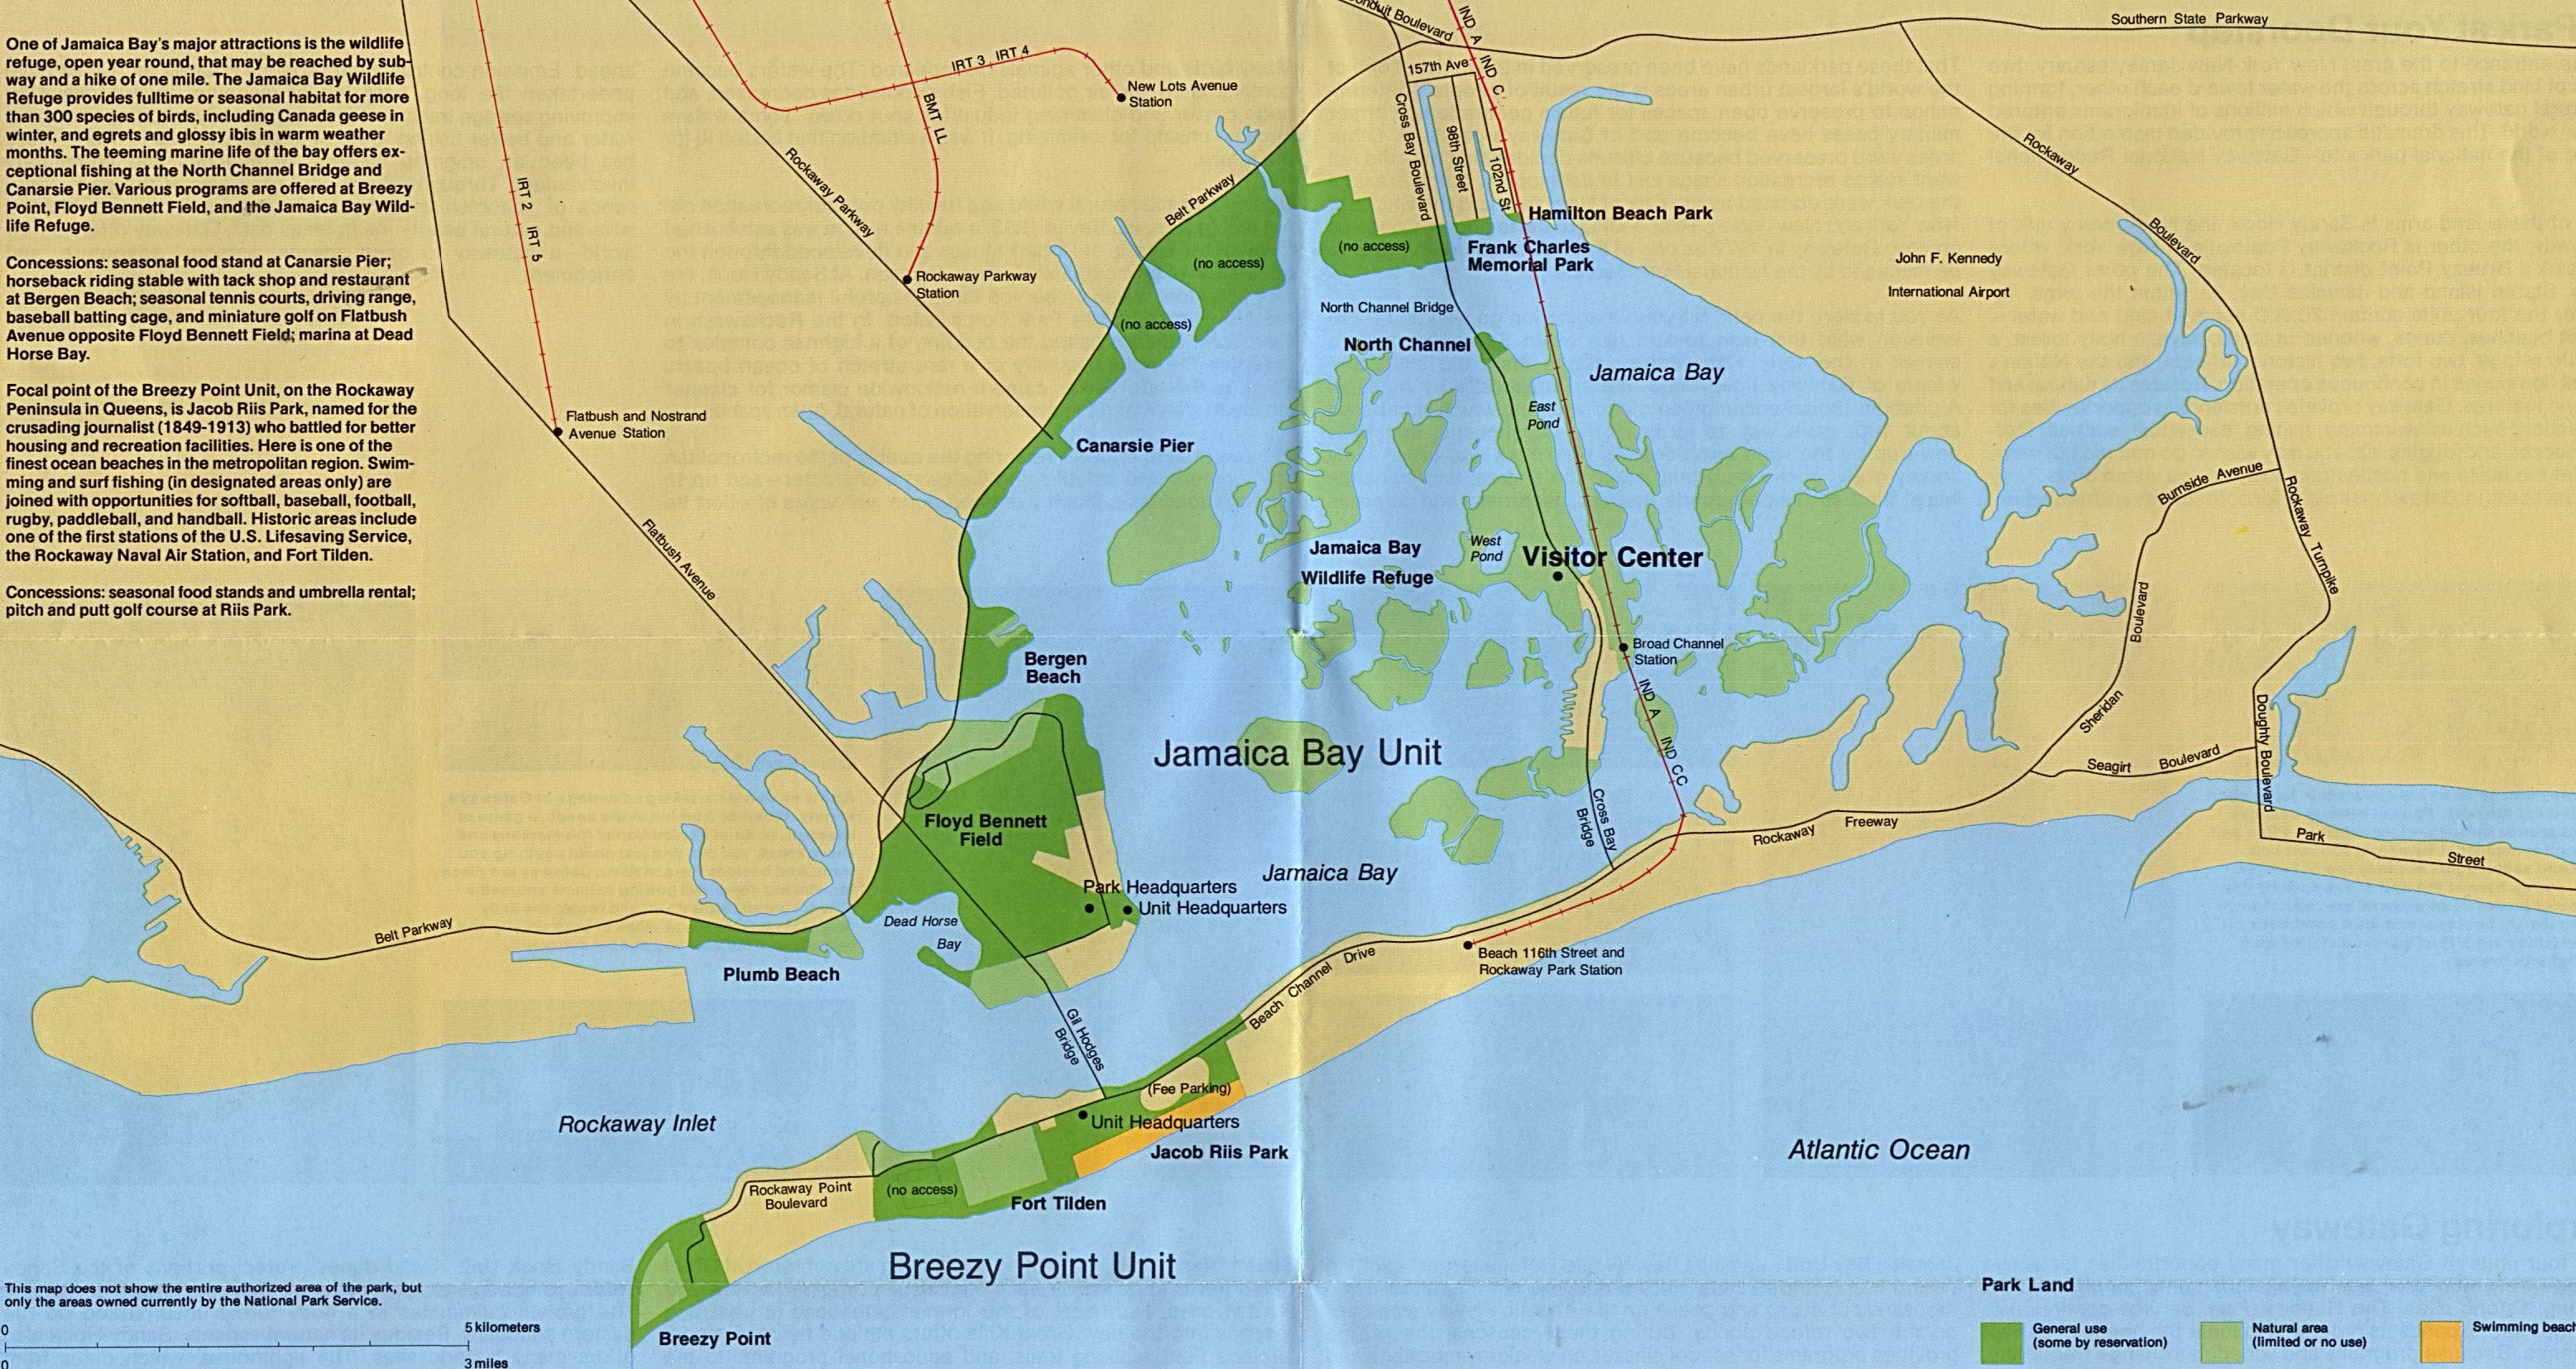 Maps of United States National Parks, Monuments and Historic Sites Gateway National Recreation Area - Jamaica Bay and Breezy Point [New York / New Jersey] (Detail Map) 1994 (801K)